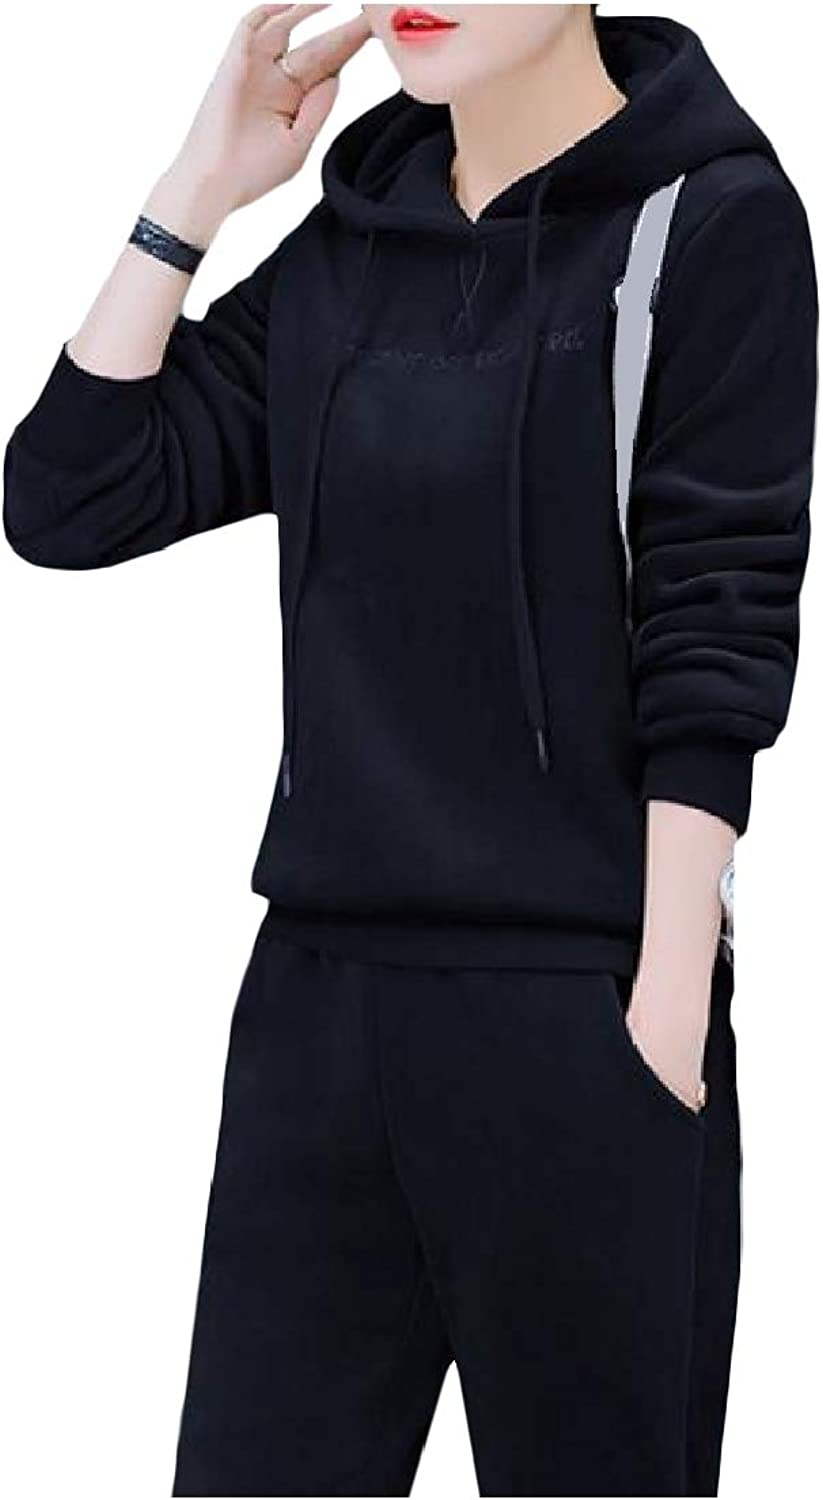 color&W Women's Plus Velvet Casual Hooded Winter Thick Tops and Sweatpants Outfit